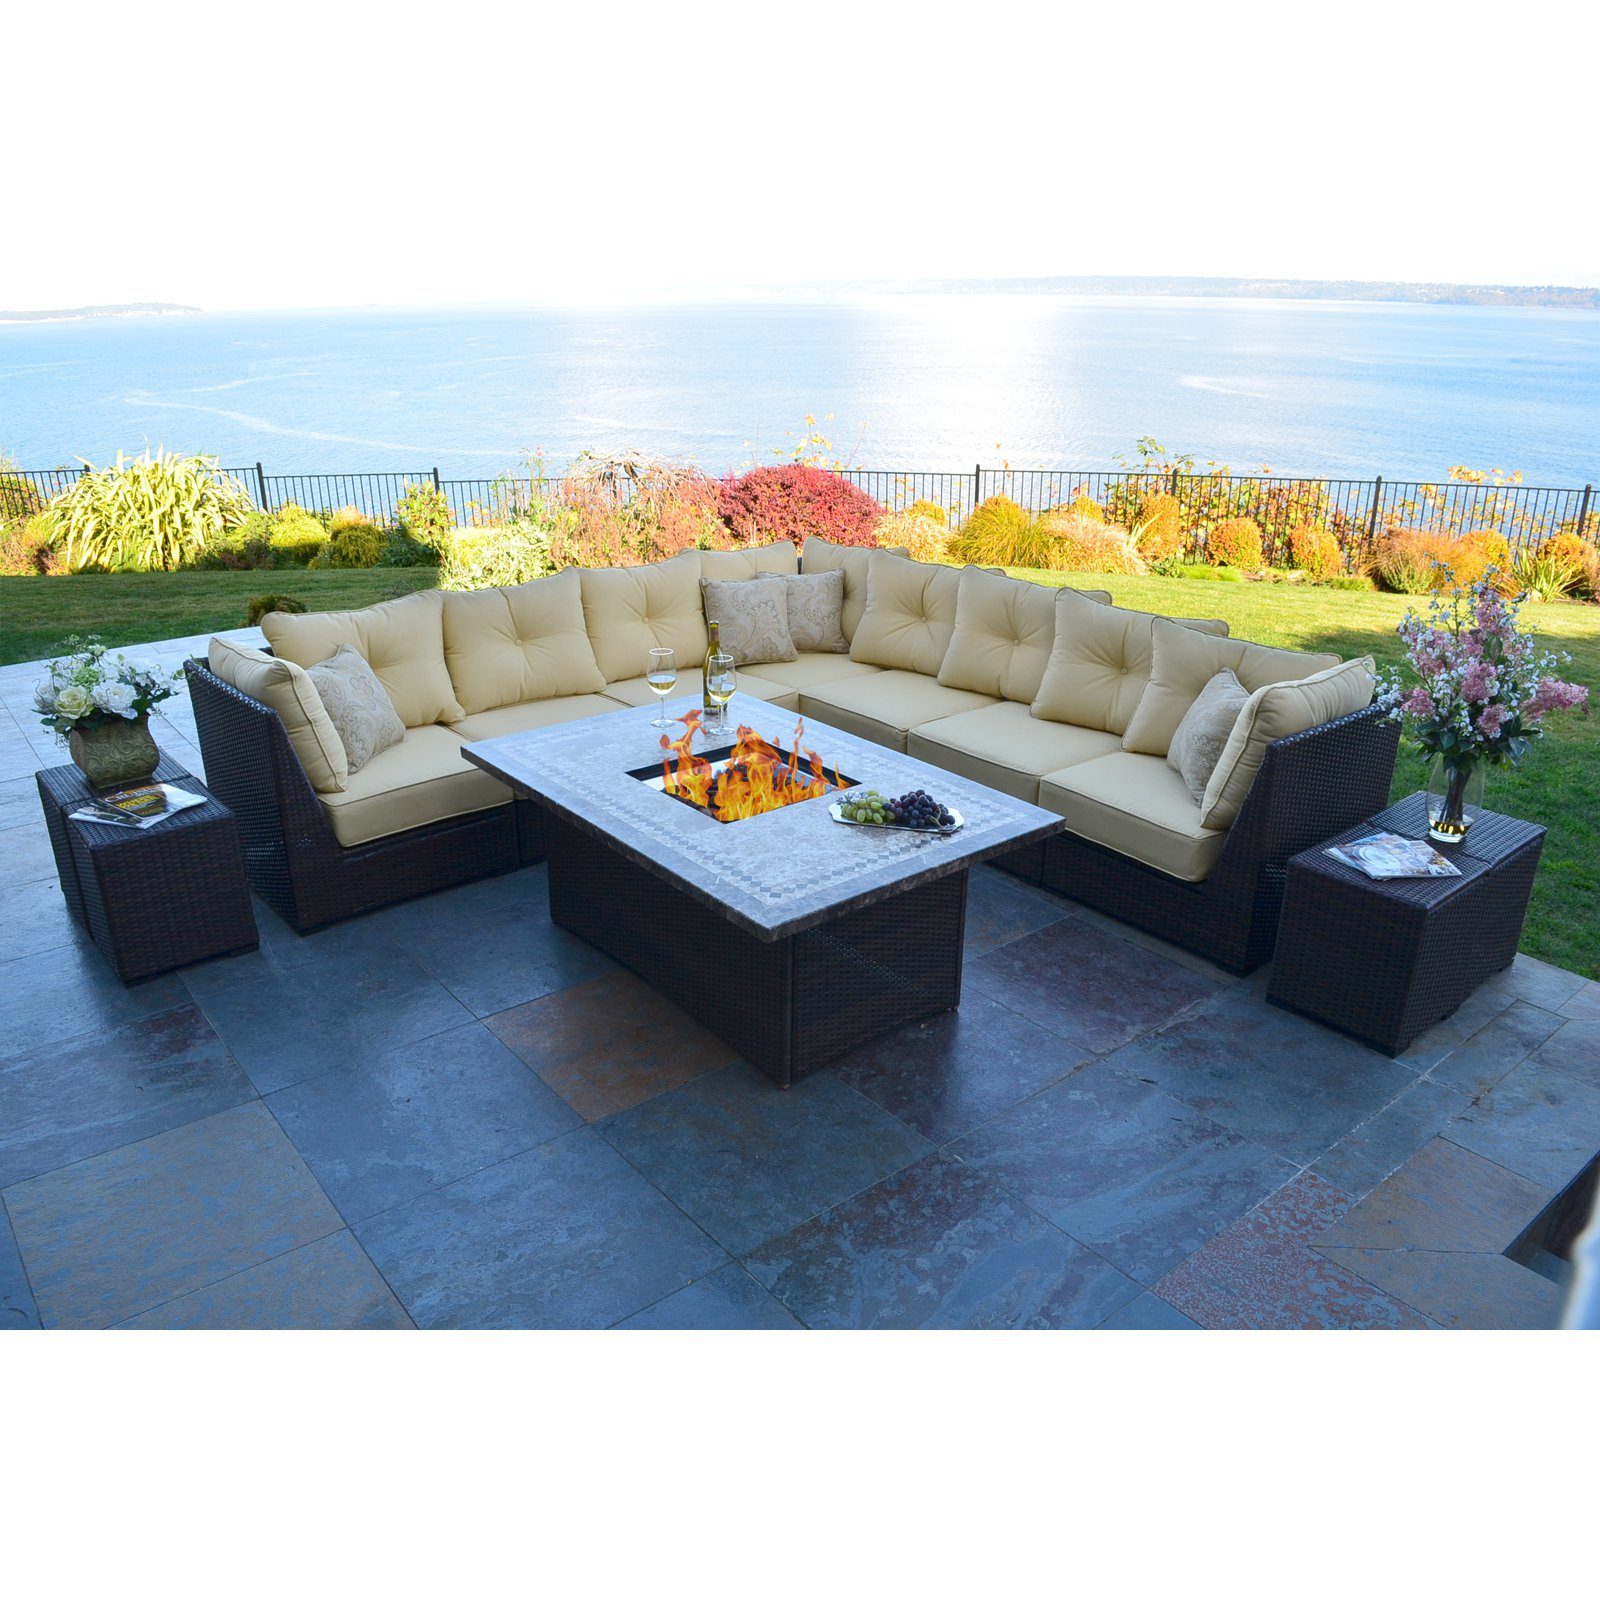 south beach allweather wicker sectional fire pit chat set walmartcom - Pit Sectional